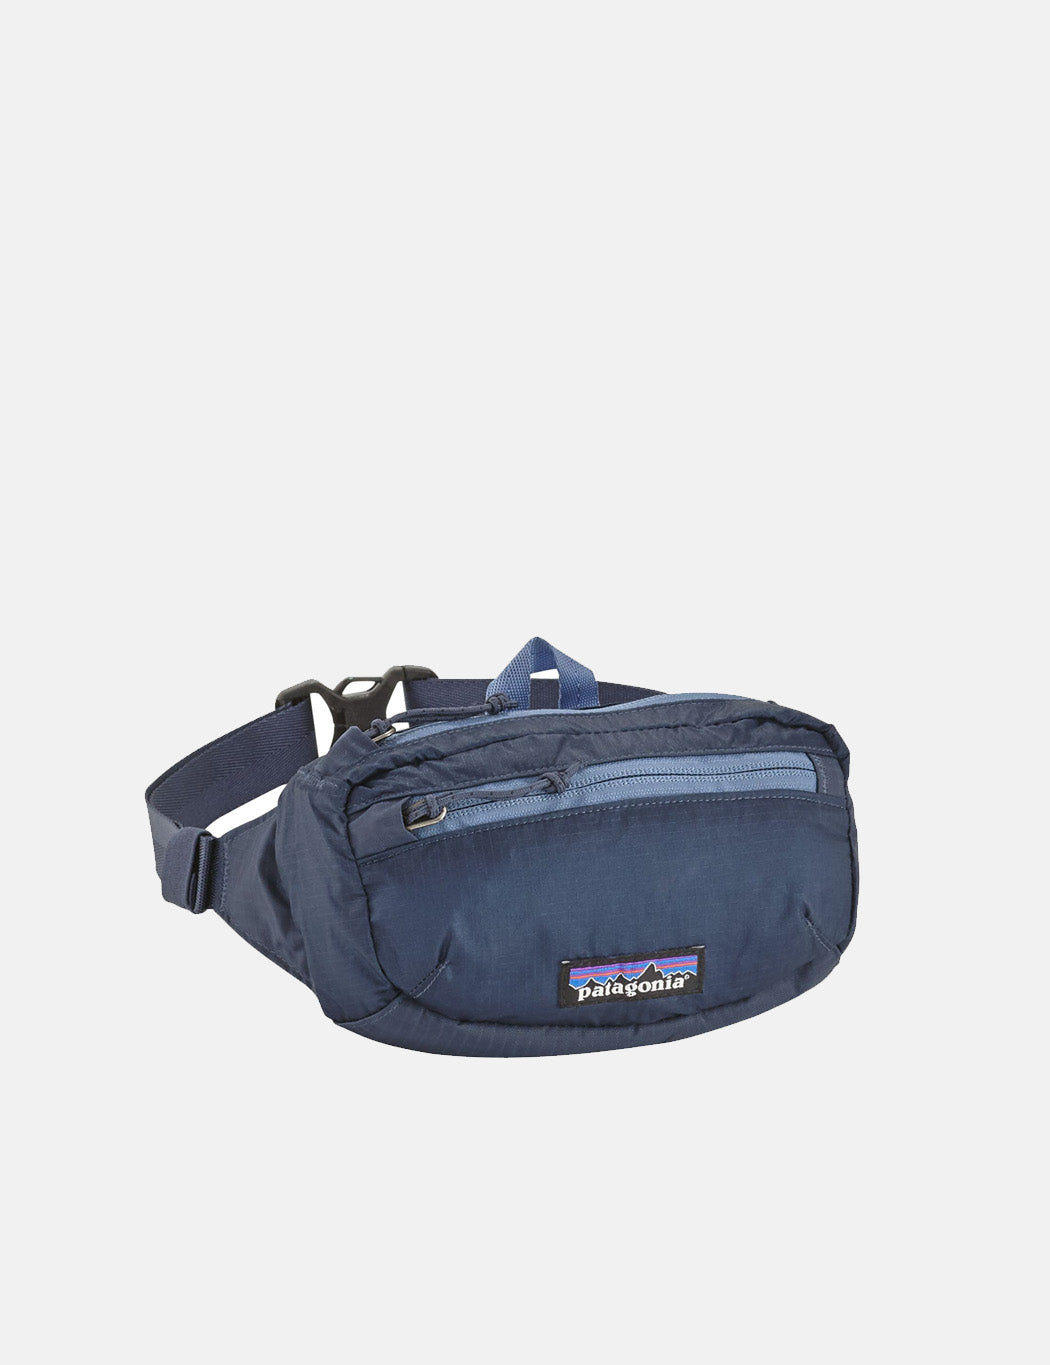 Patagonia Lightweight Travel Mini Hip Bag - Dolomite Blue